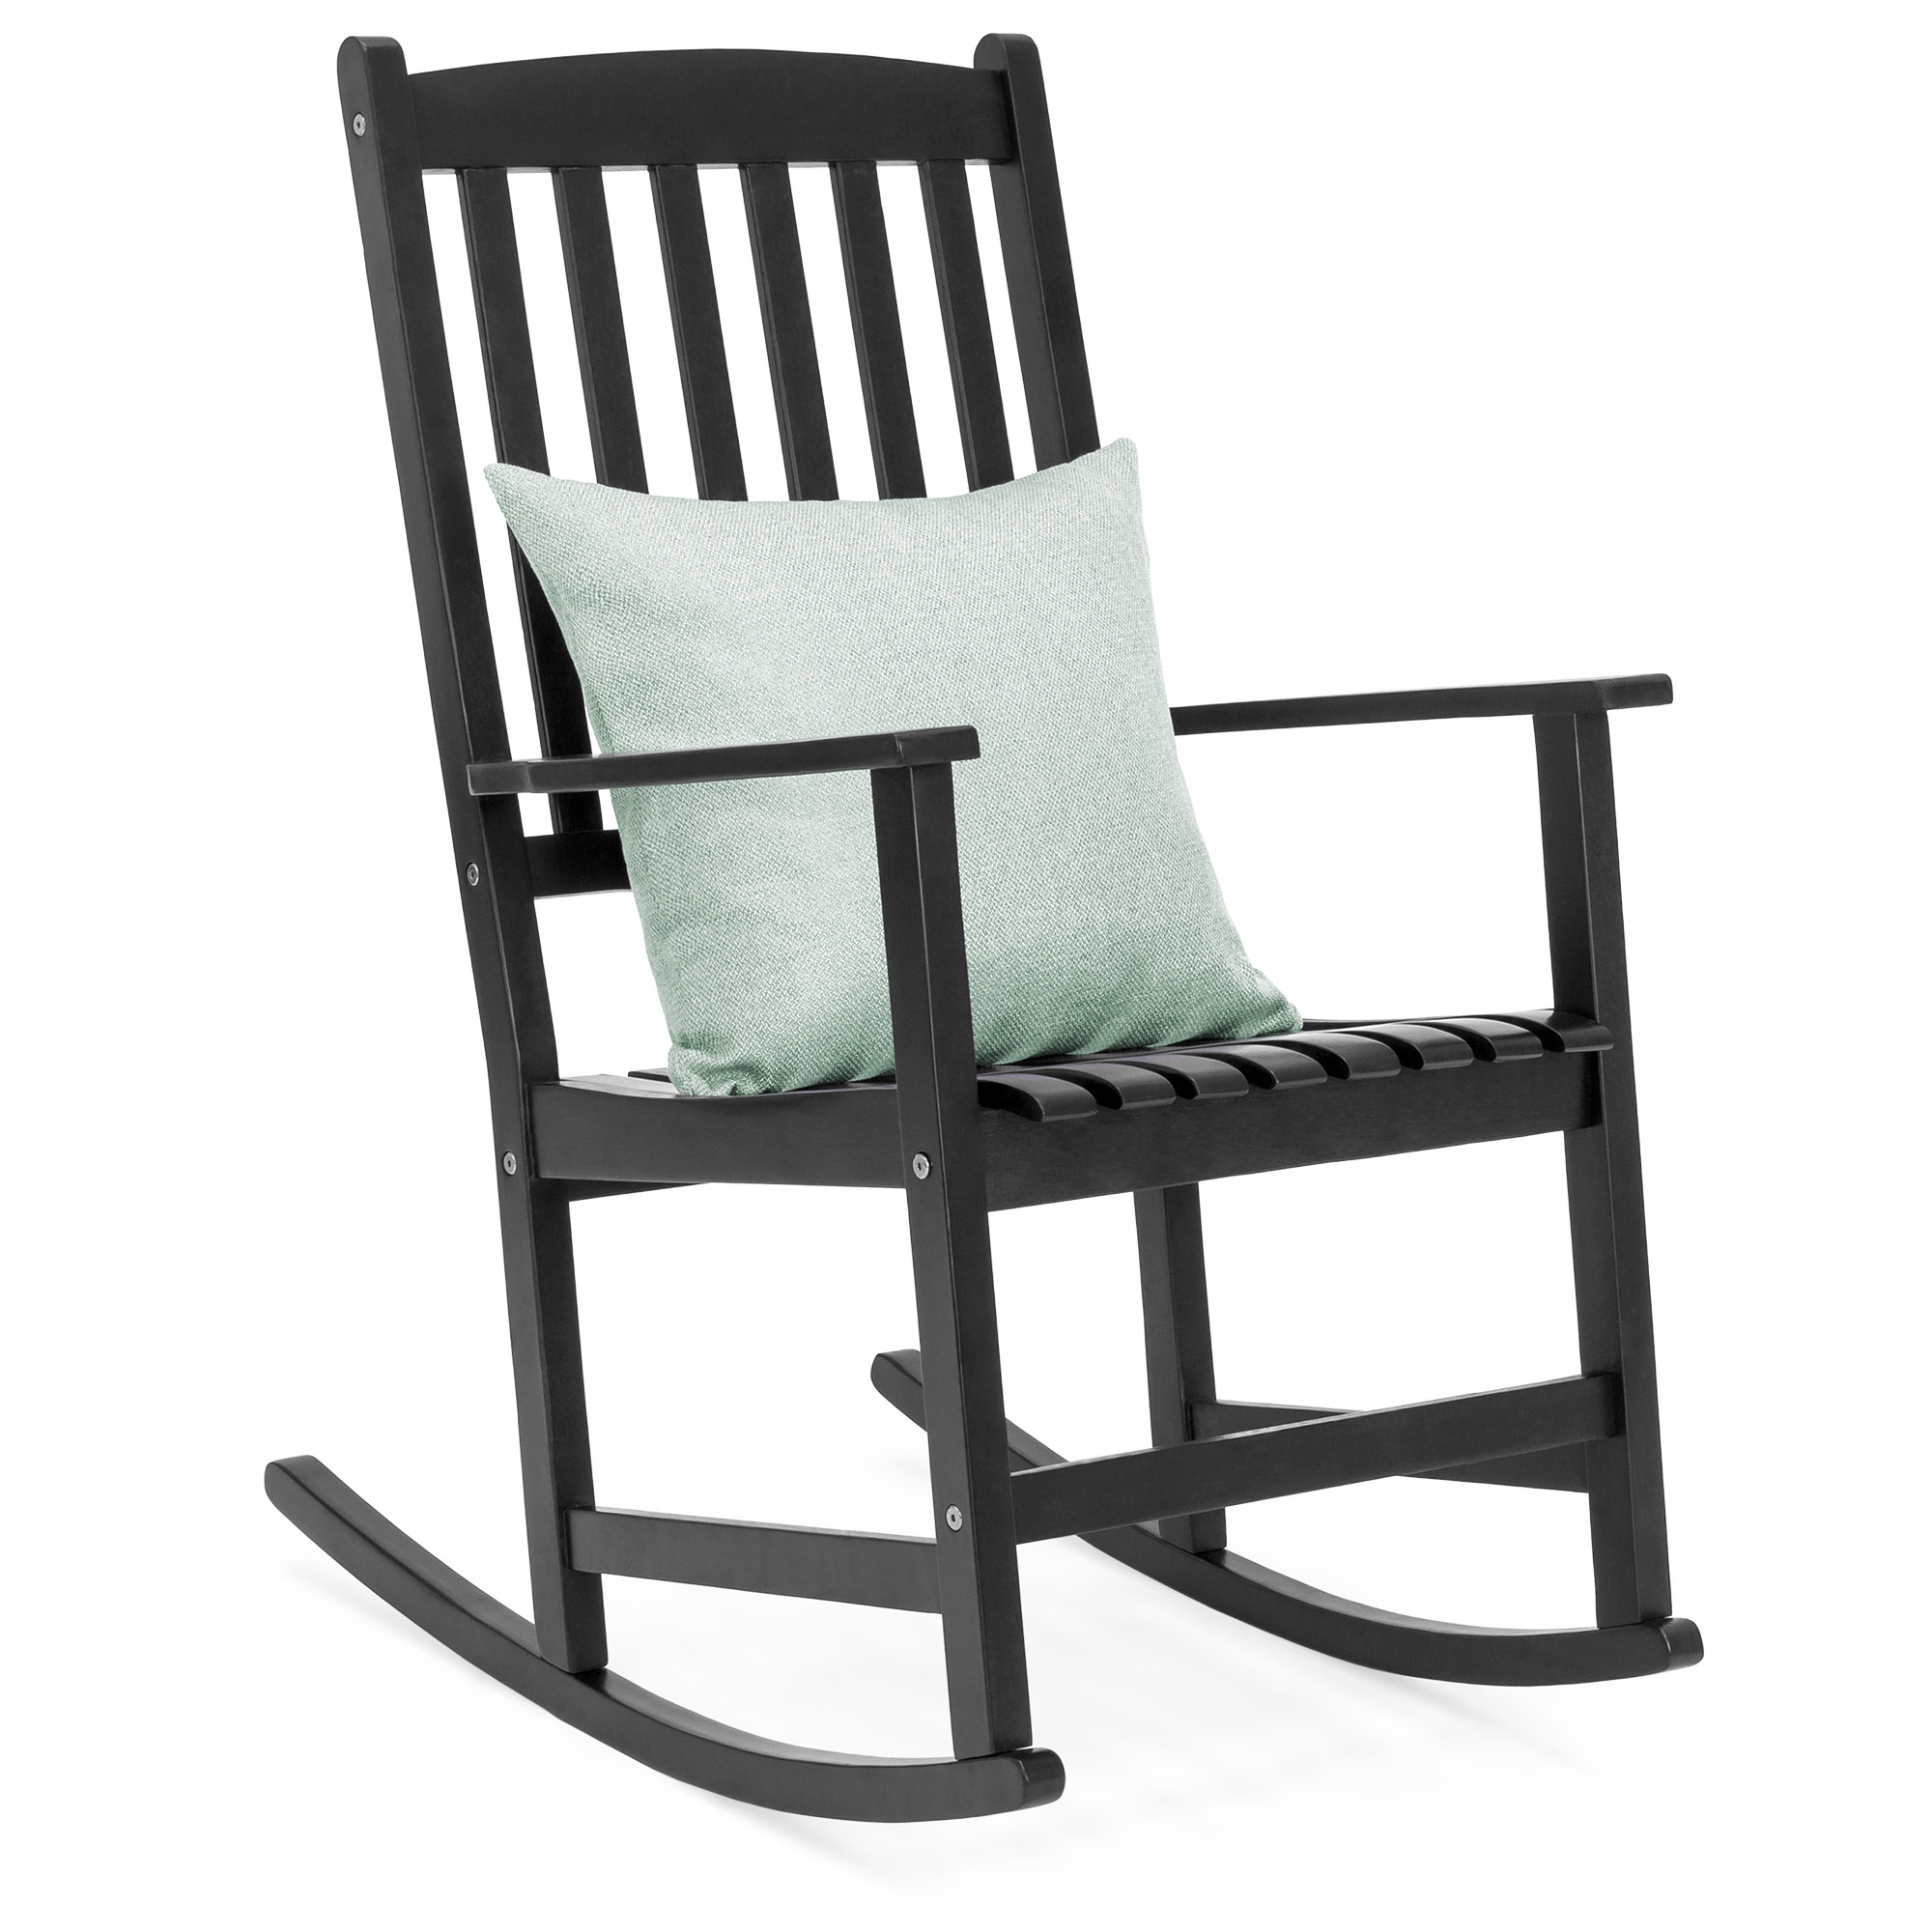 Best Choice Products Indoor Outdoor Traditional Wooden Rocking Chair Furniture w/ Slatted Seat and Backrest for Patio, Porch, Living Room, Home Decoration - Black